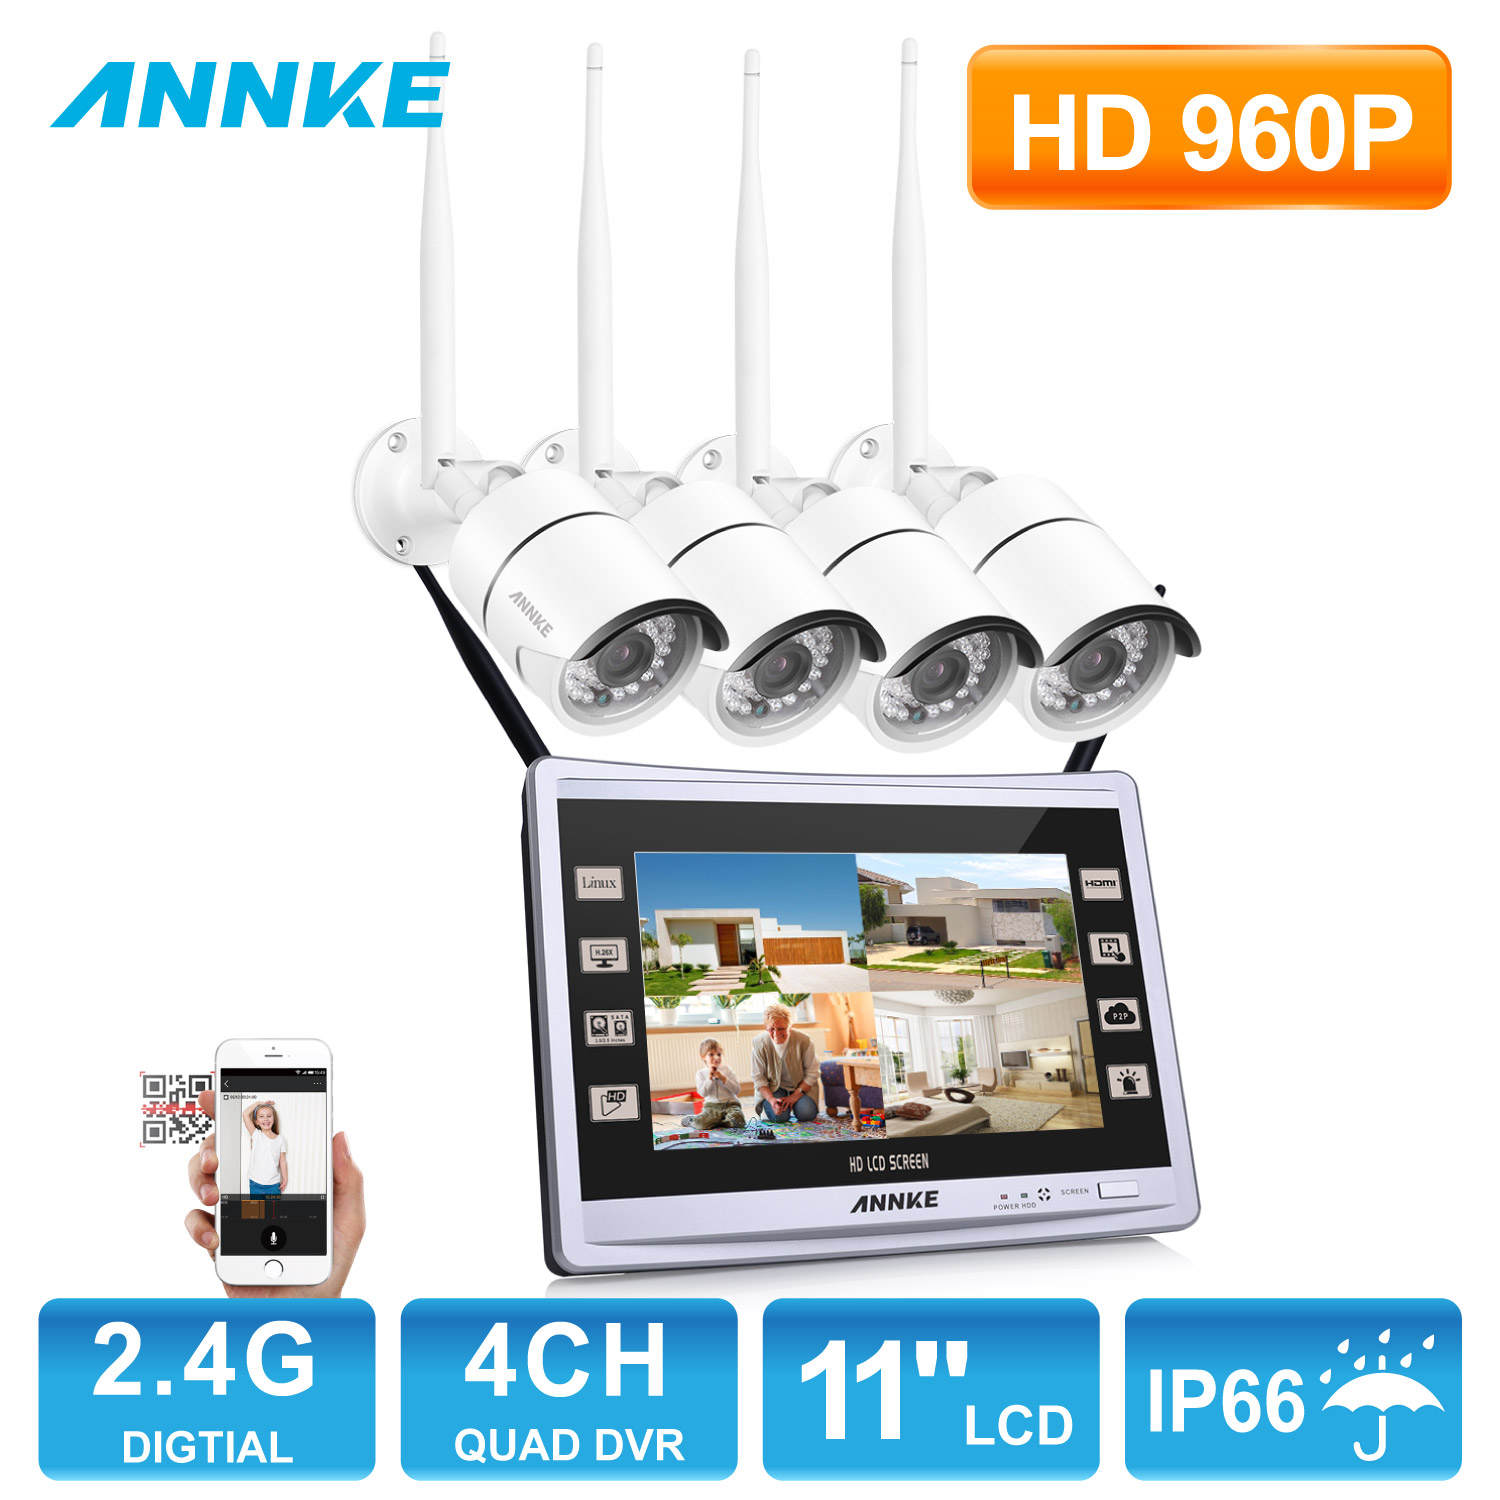 ANNKE 4CH HDMI NVR 1.3MP 960P Wireless IP CCTV WIFI Surveillance Security Camera System With NO Hard Drive Disk